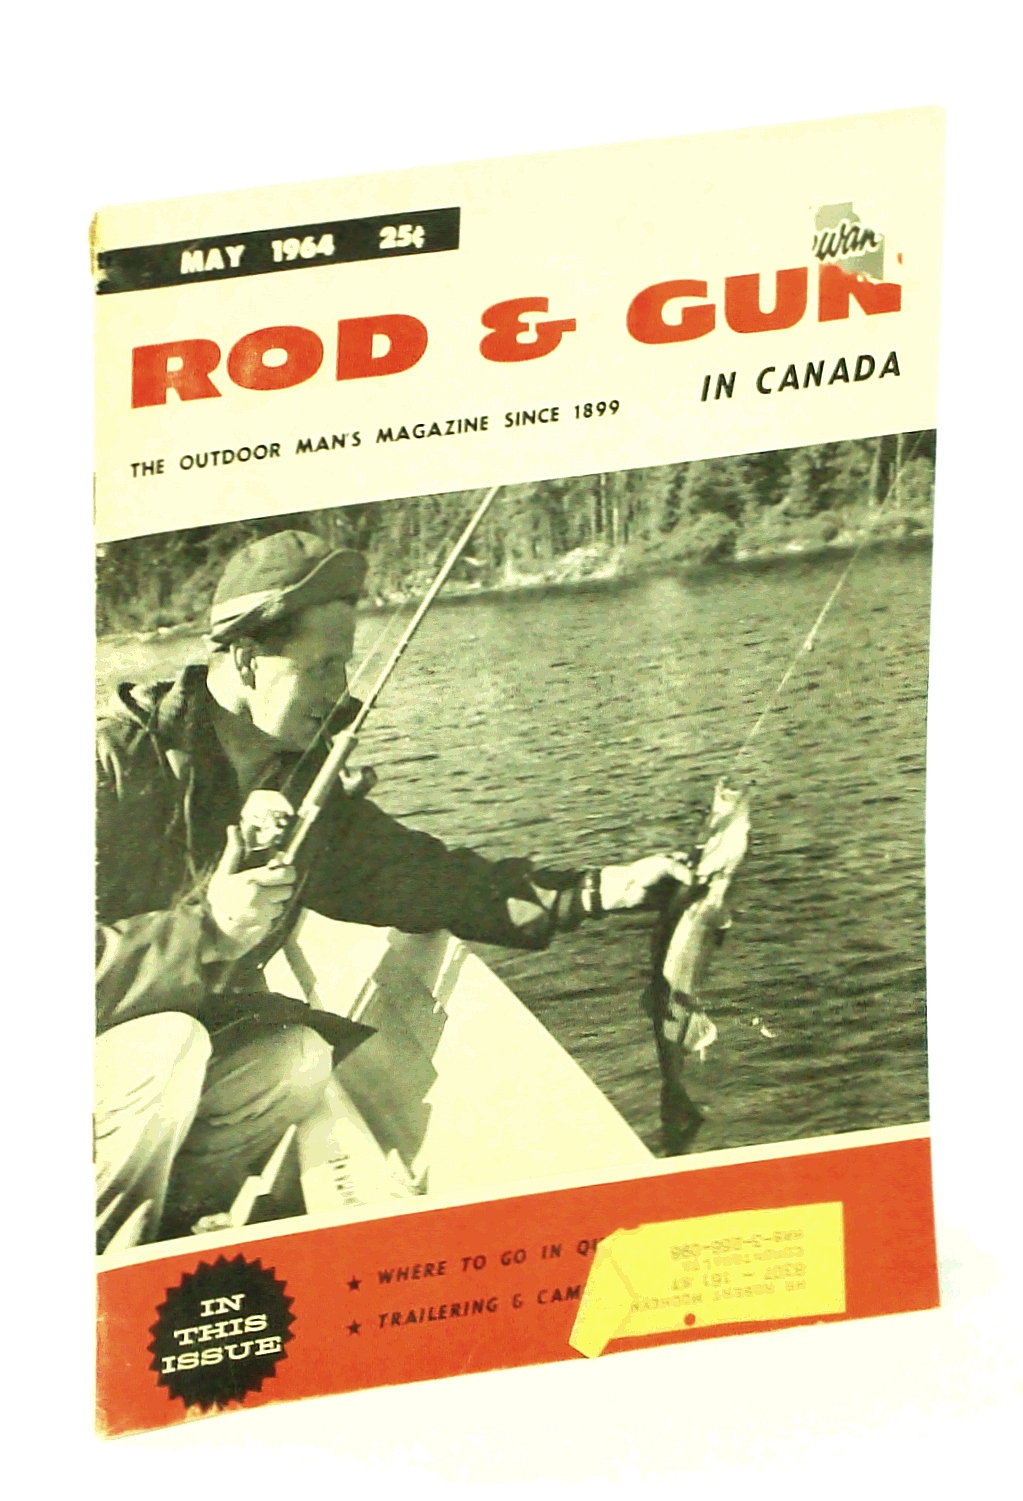 Image for Rod & Gun in Canada Magazine, May 1964